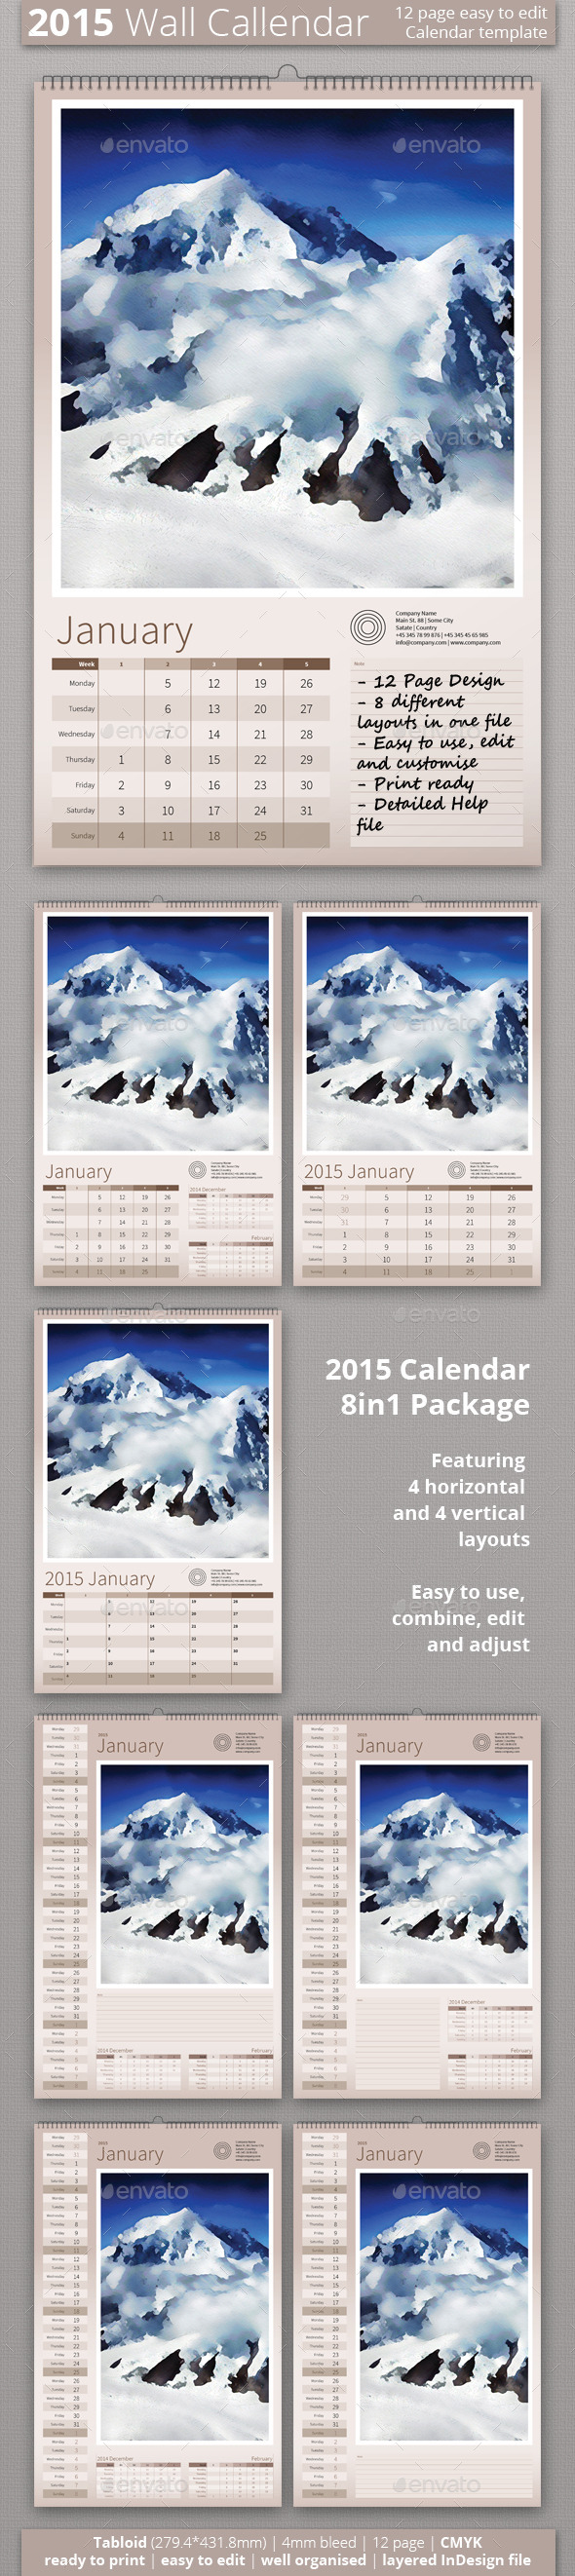 GraphicRiver 2015 Wall Calendar 9265557